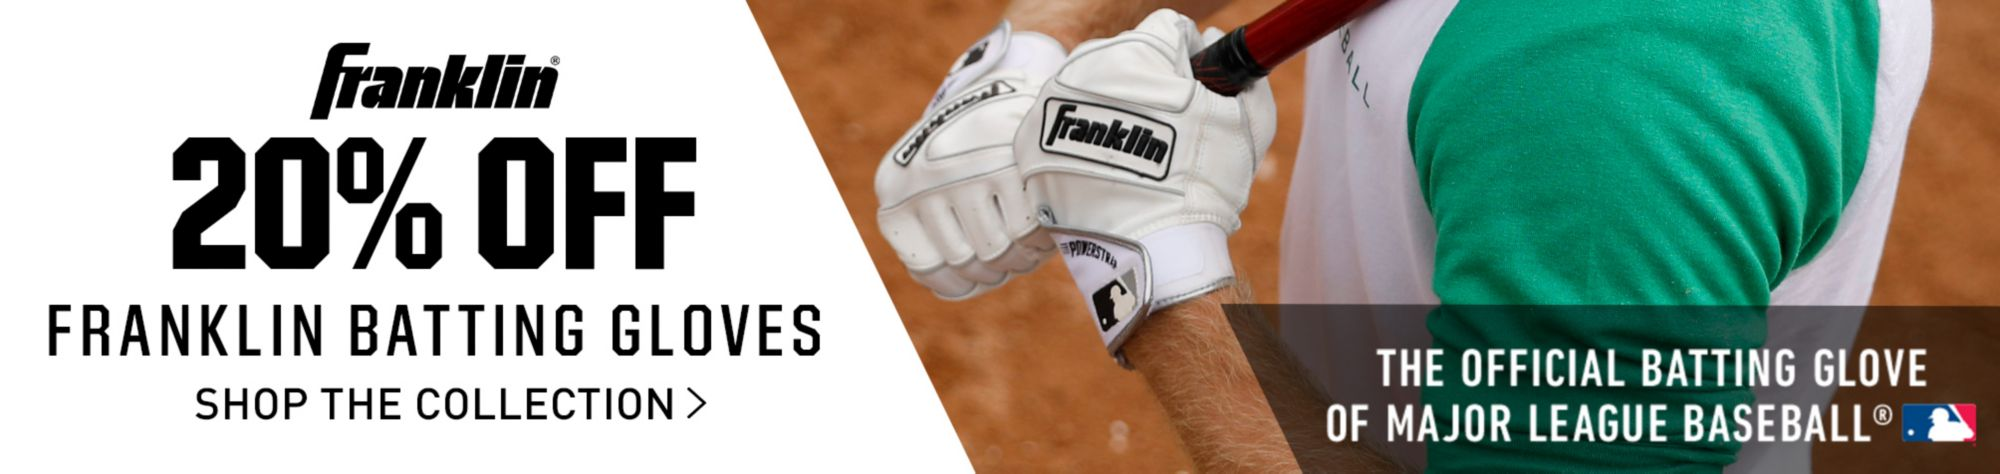 20% Off Franklin Batting Gloves Holiday